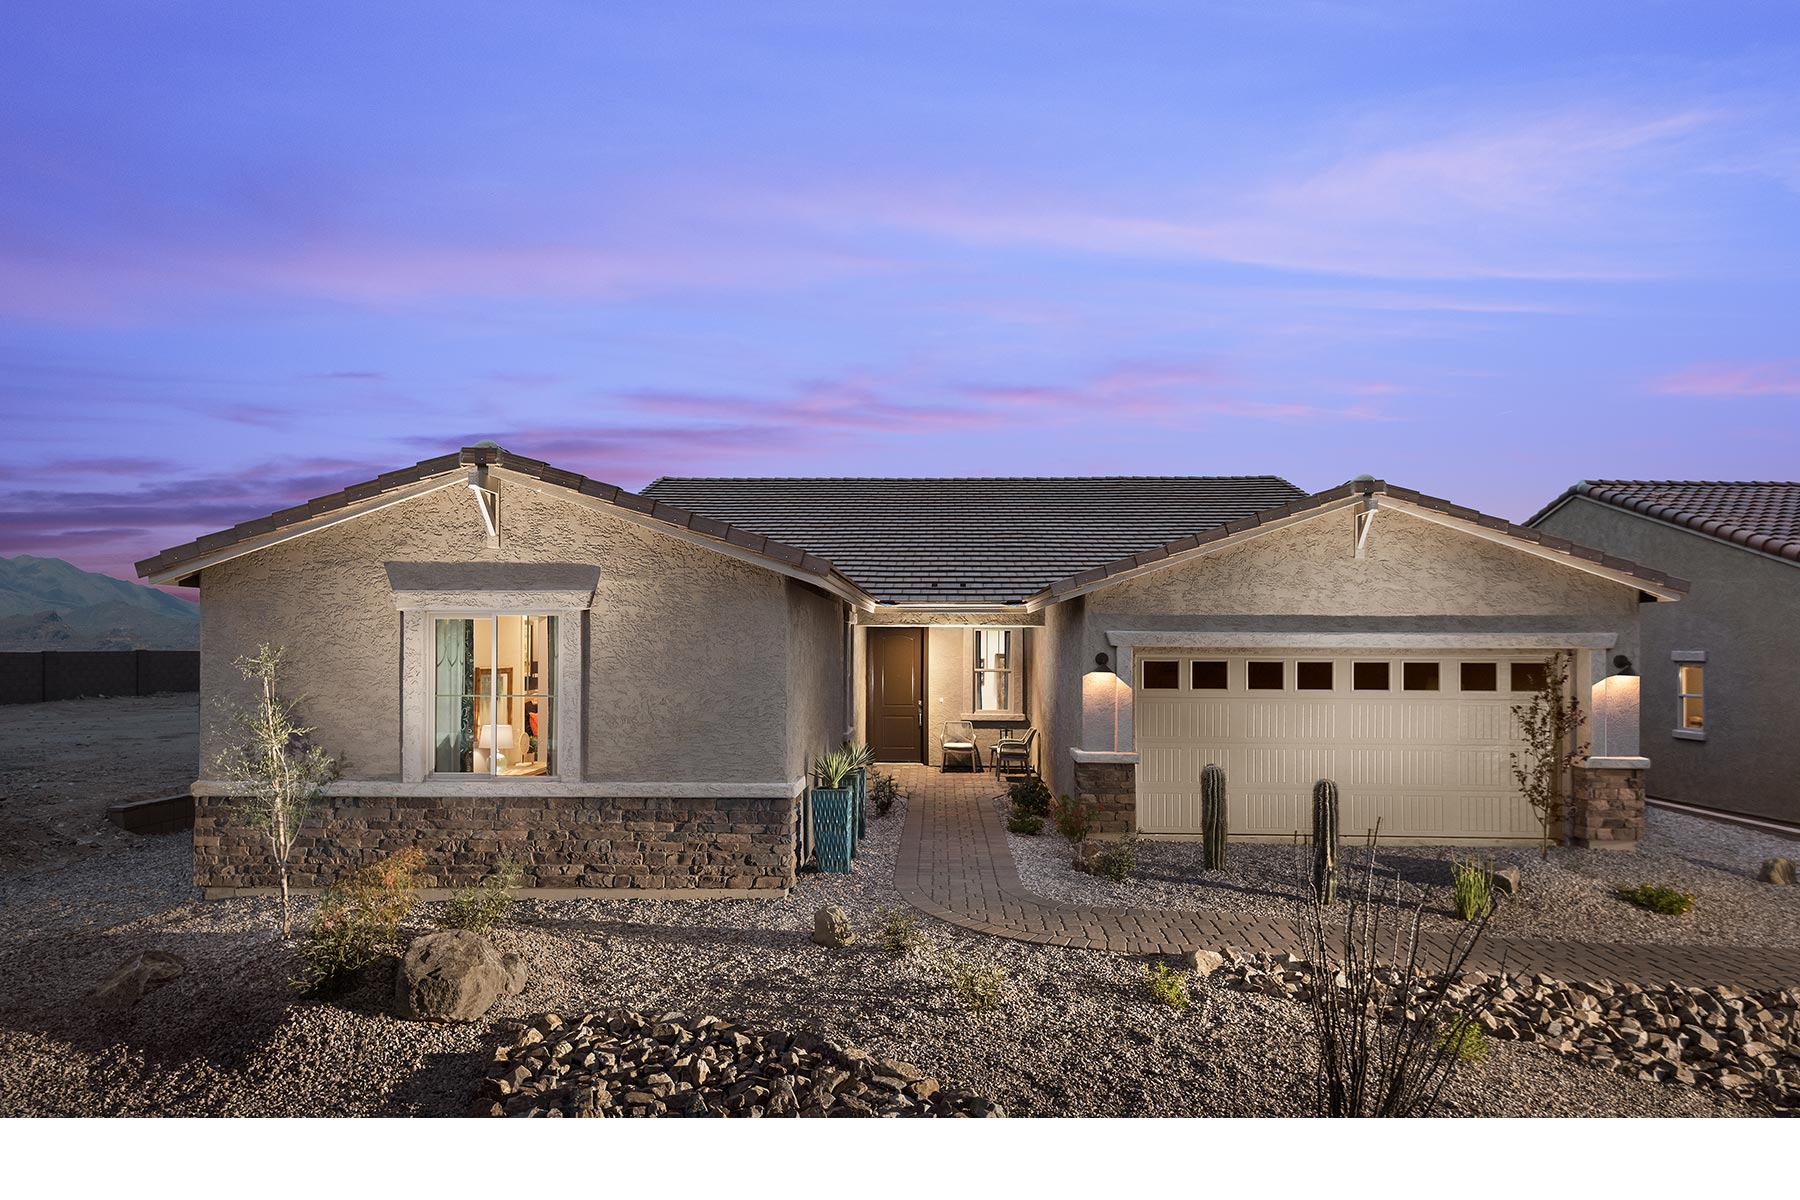 Willow Plan Elevation Front at Desert Oasis at Twin Peaks in Marana Arizona by Mattamy Homes